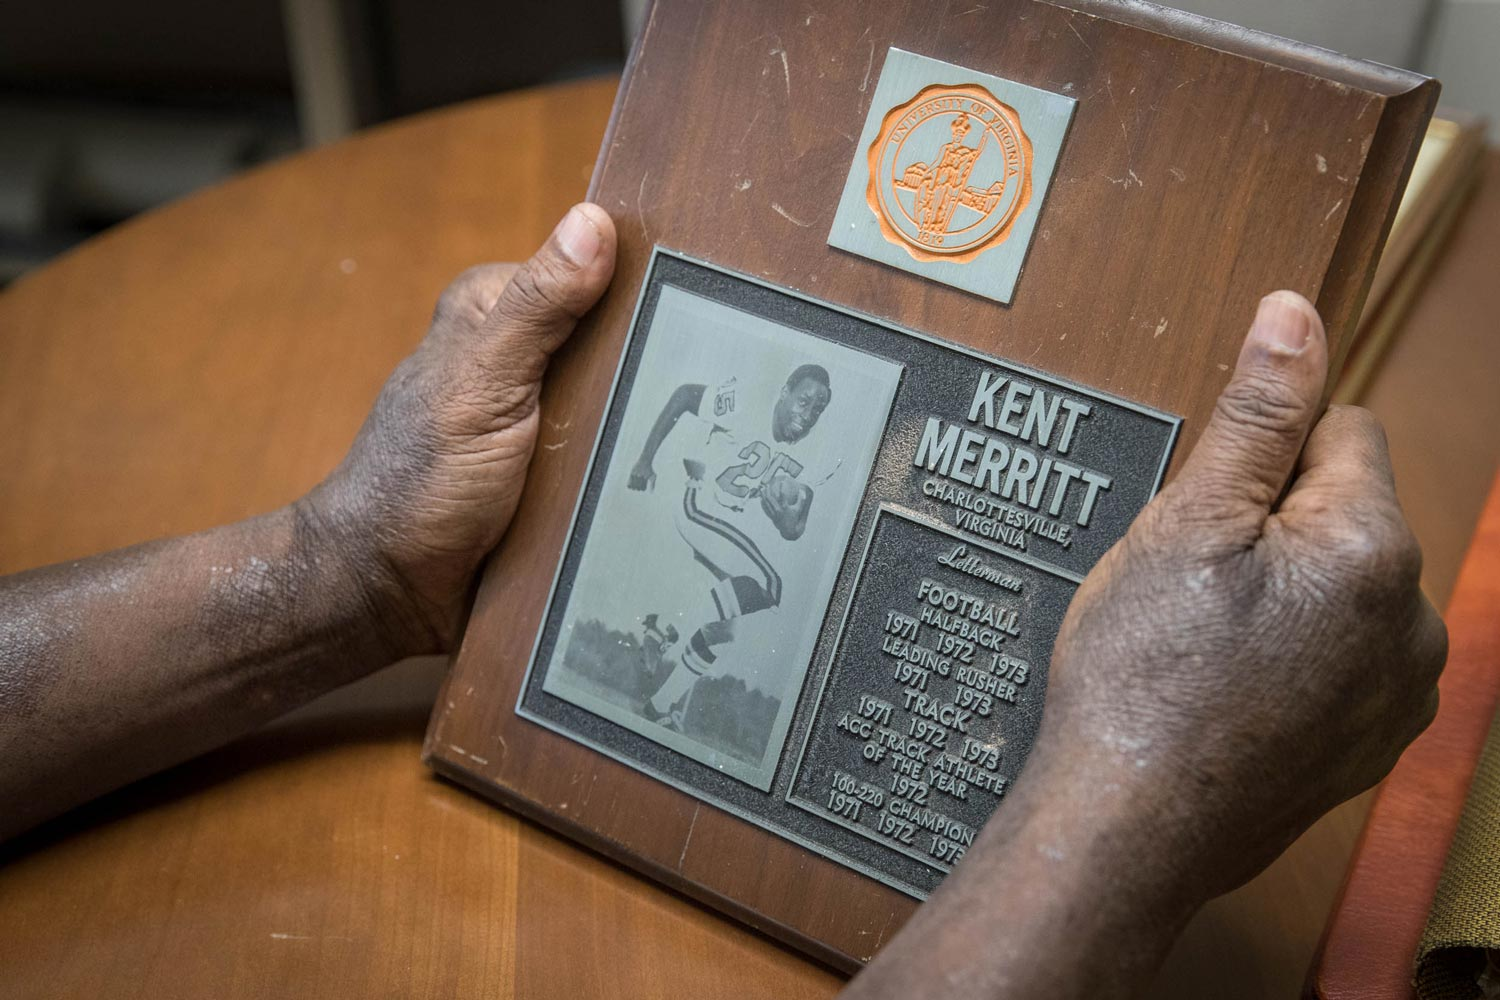 In addition to his success on the football field, Merritt was a standout track athlete.